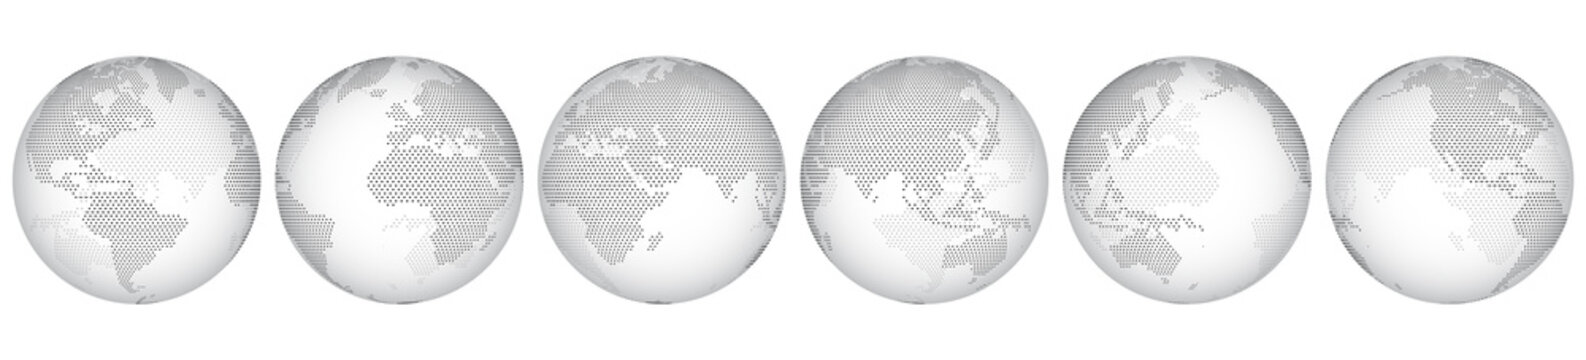 Set of six options for different locations of the globe, constructed from little hexagons. Isolated. Planet earth, abstract round map. Transparent sphere.